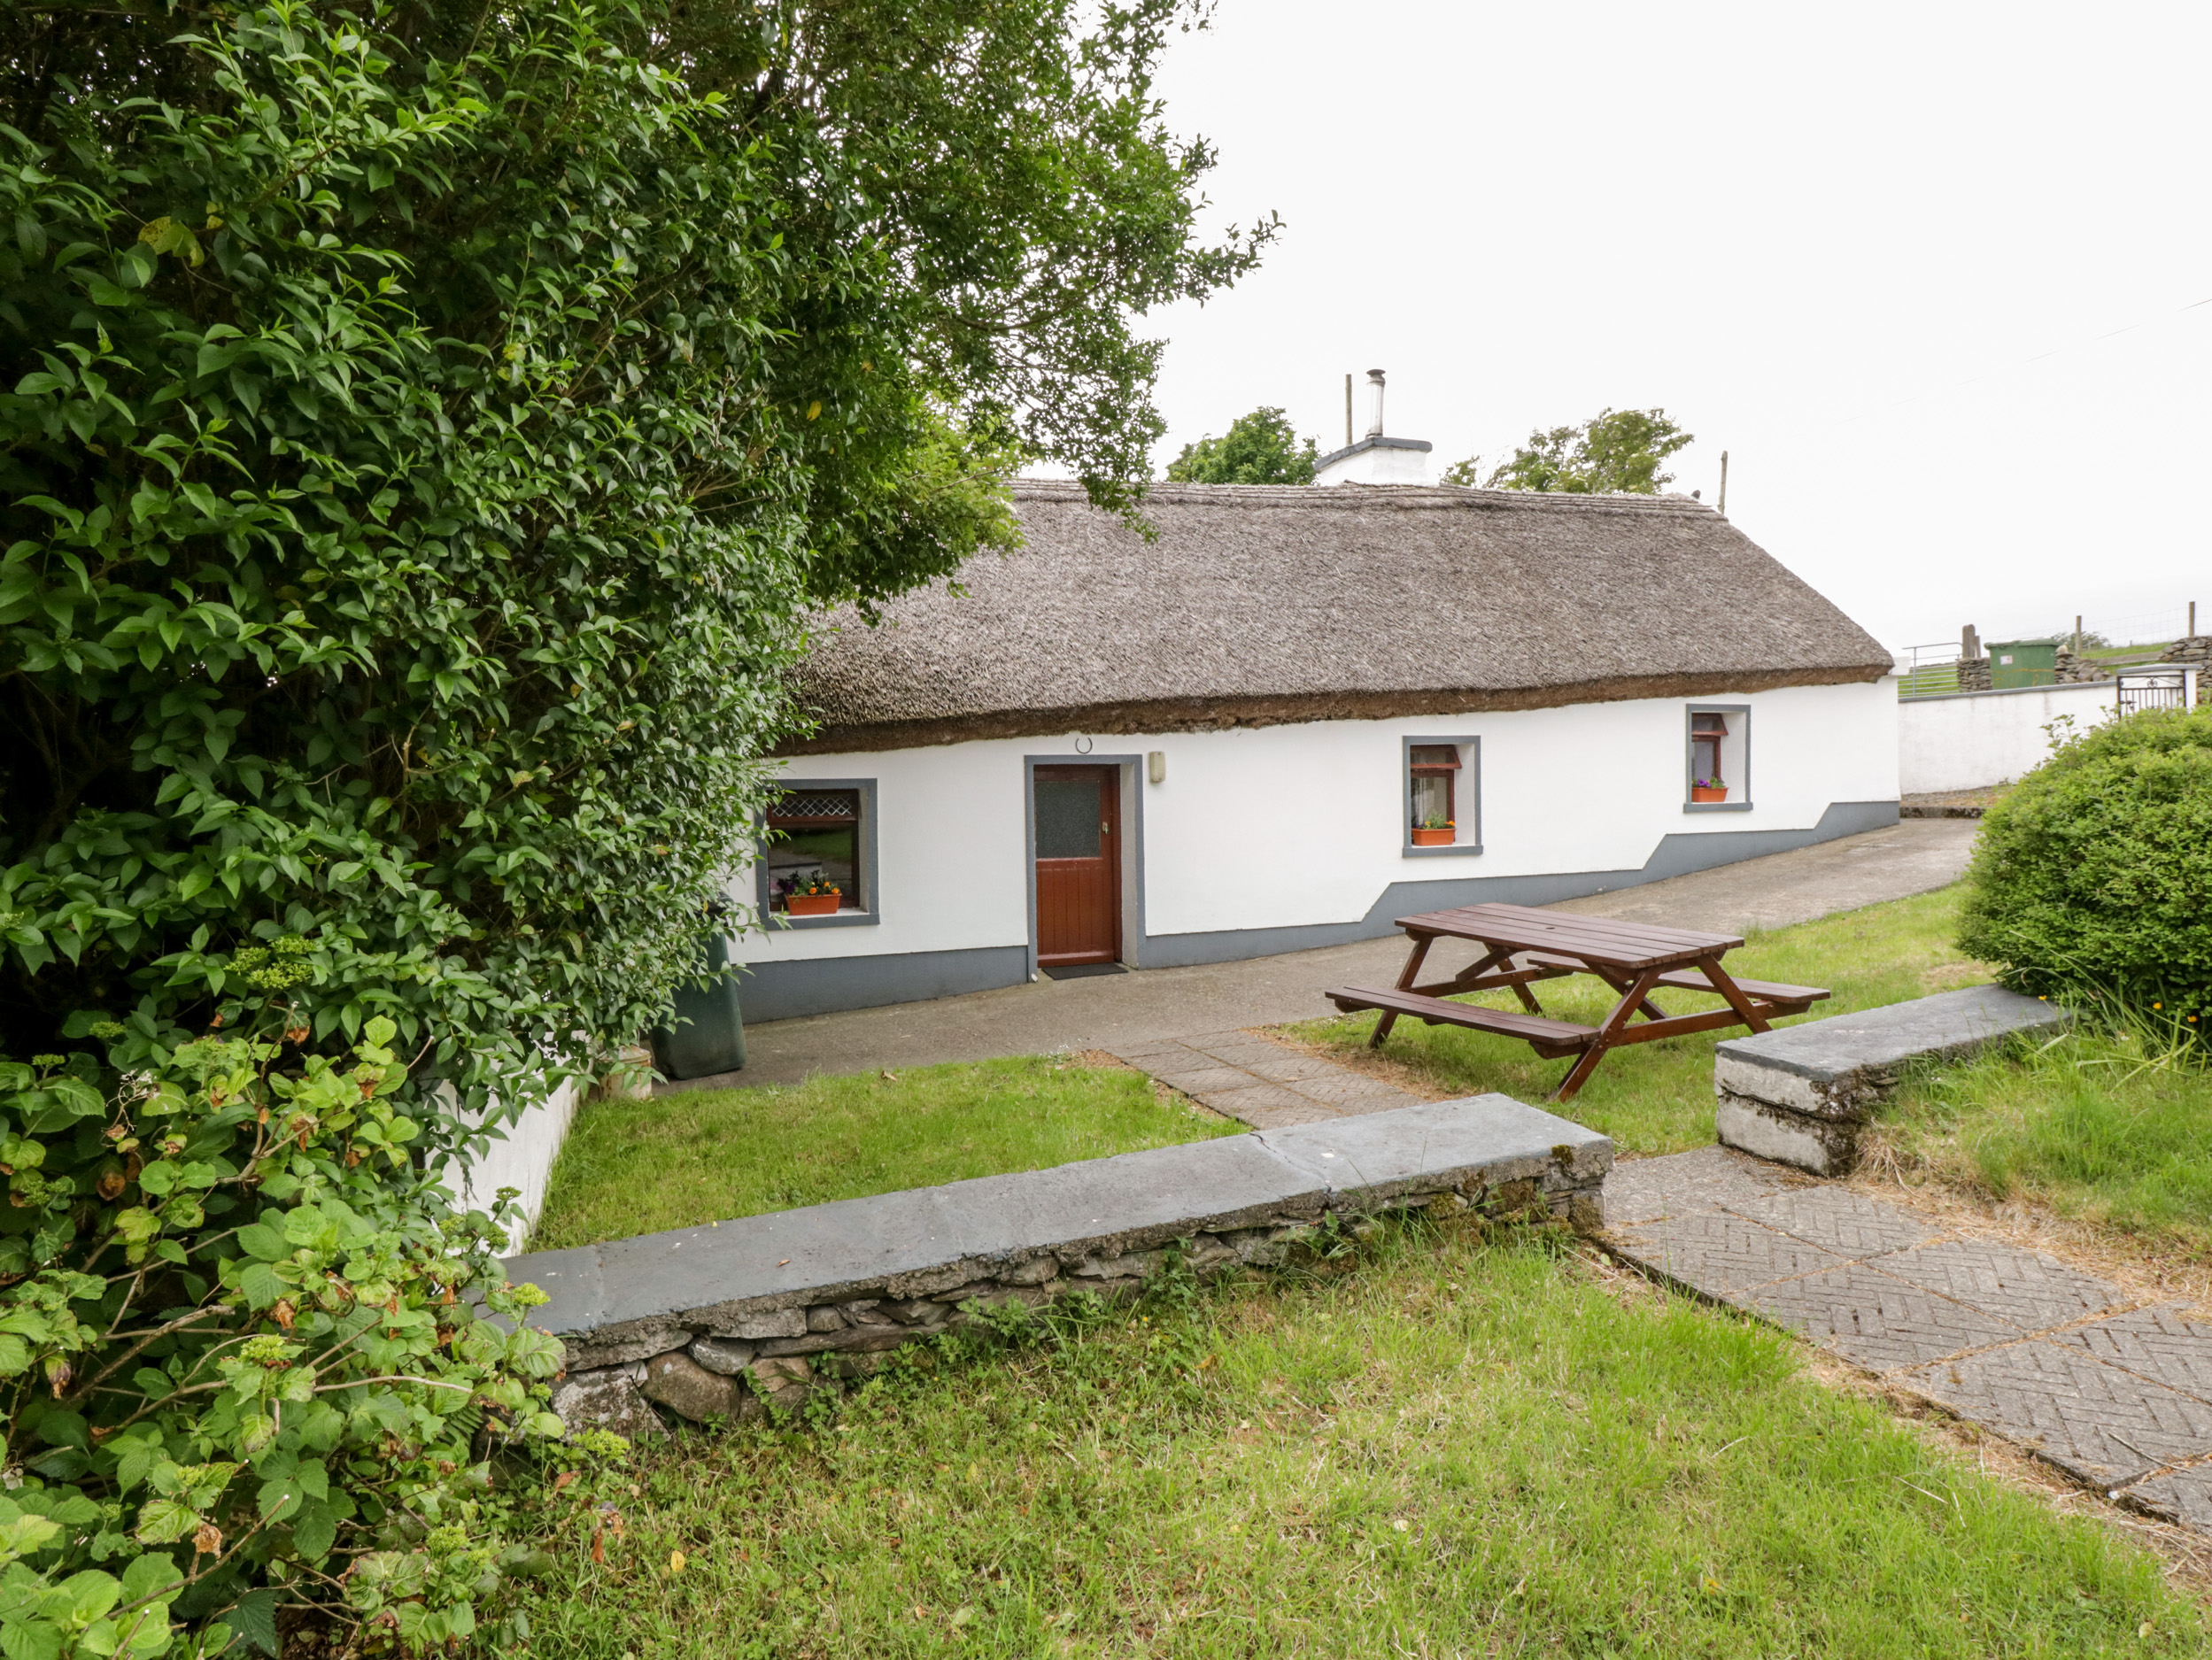 The Thatched Cottage, County Mayo